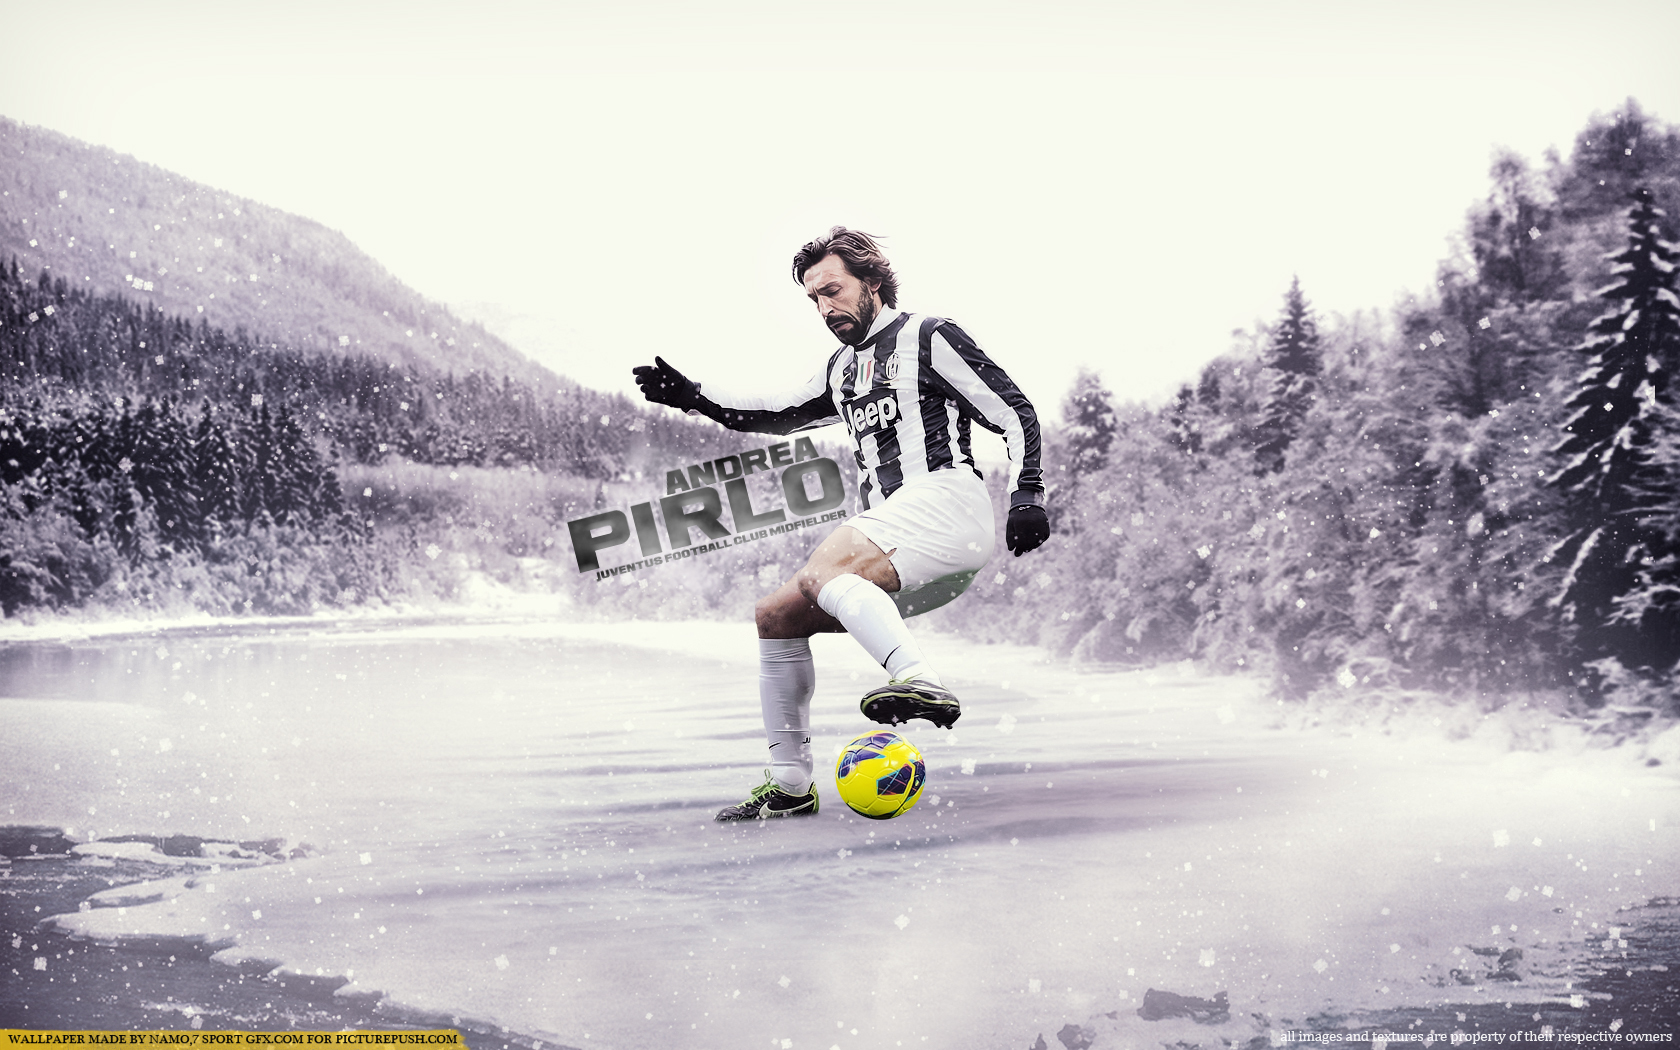 Andrea Pirlo Wallpaper 2015 Free